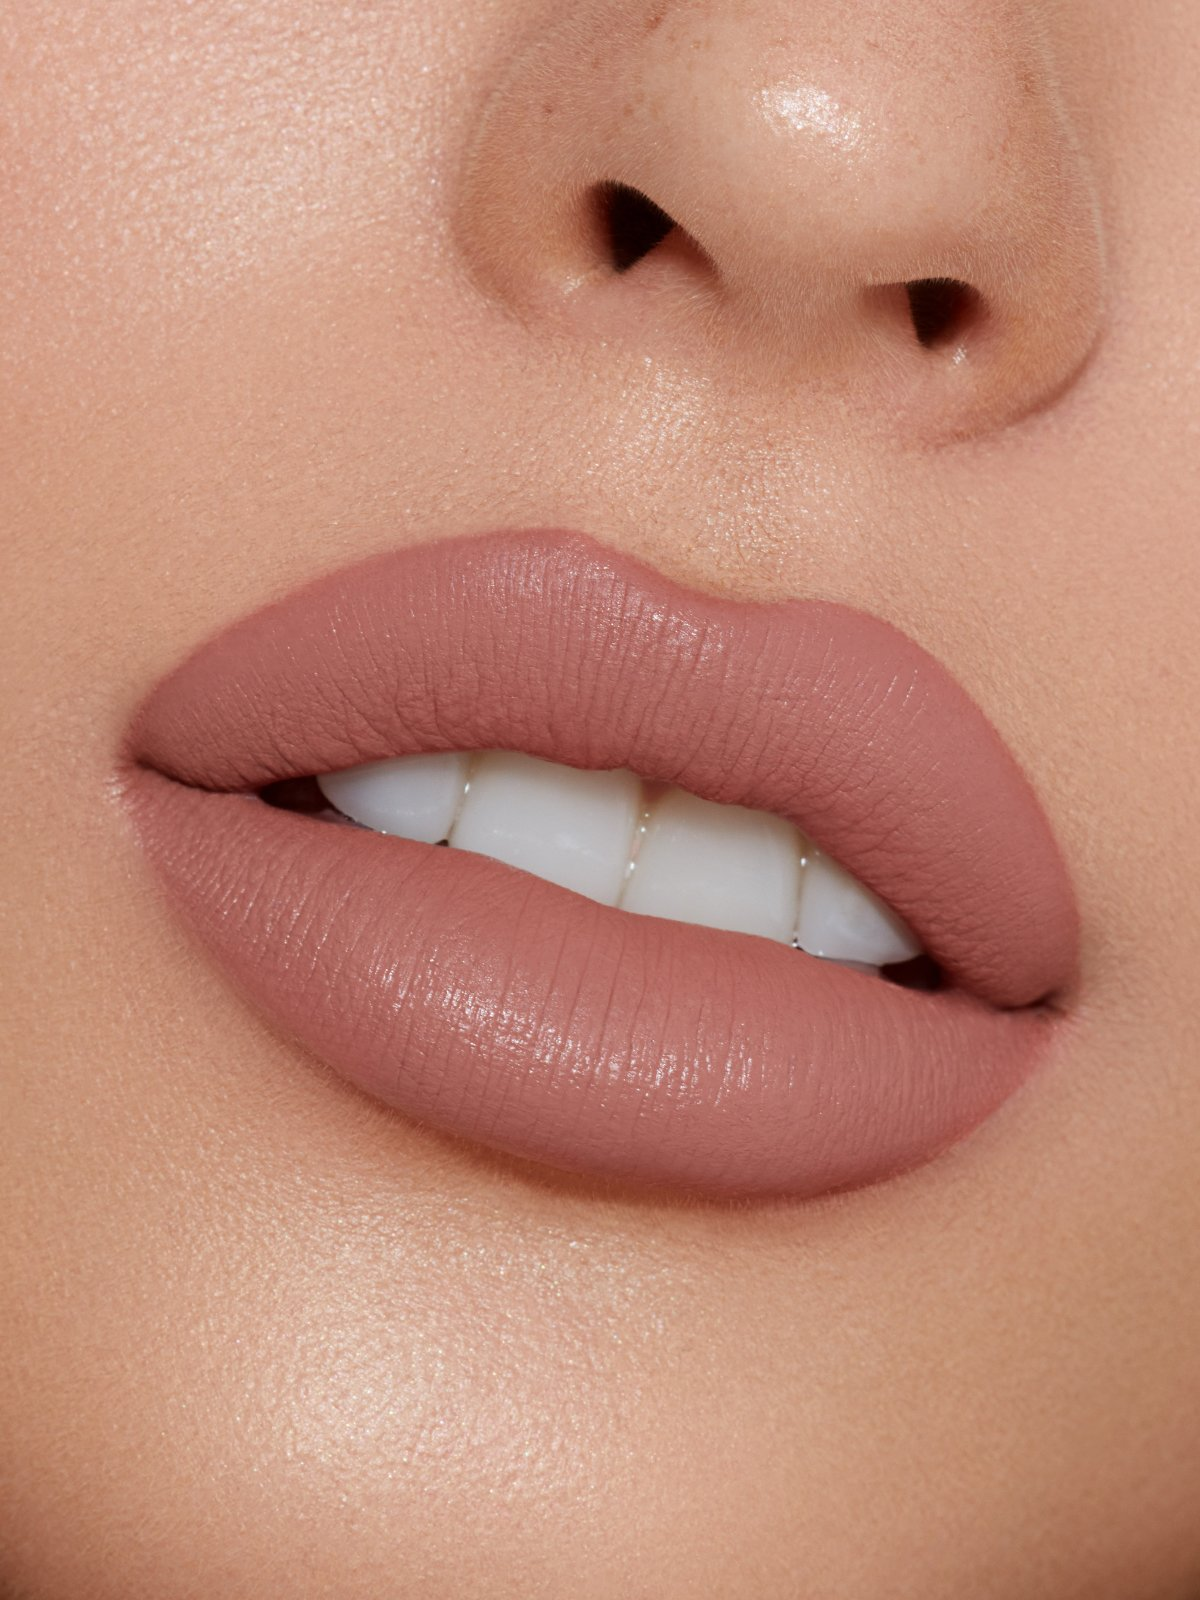 Allergic to Bullsh*t | Matte Liquid Lipstick - Kylie Cosmetics by Kylie Jenner